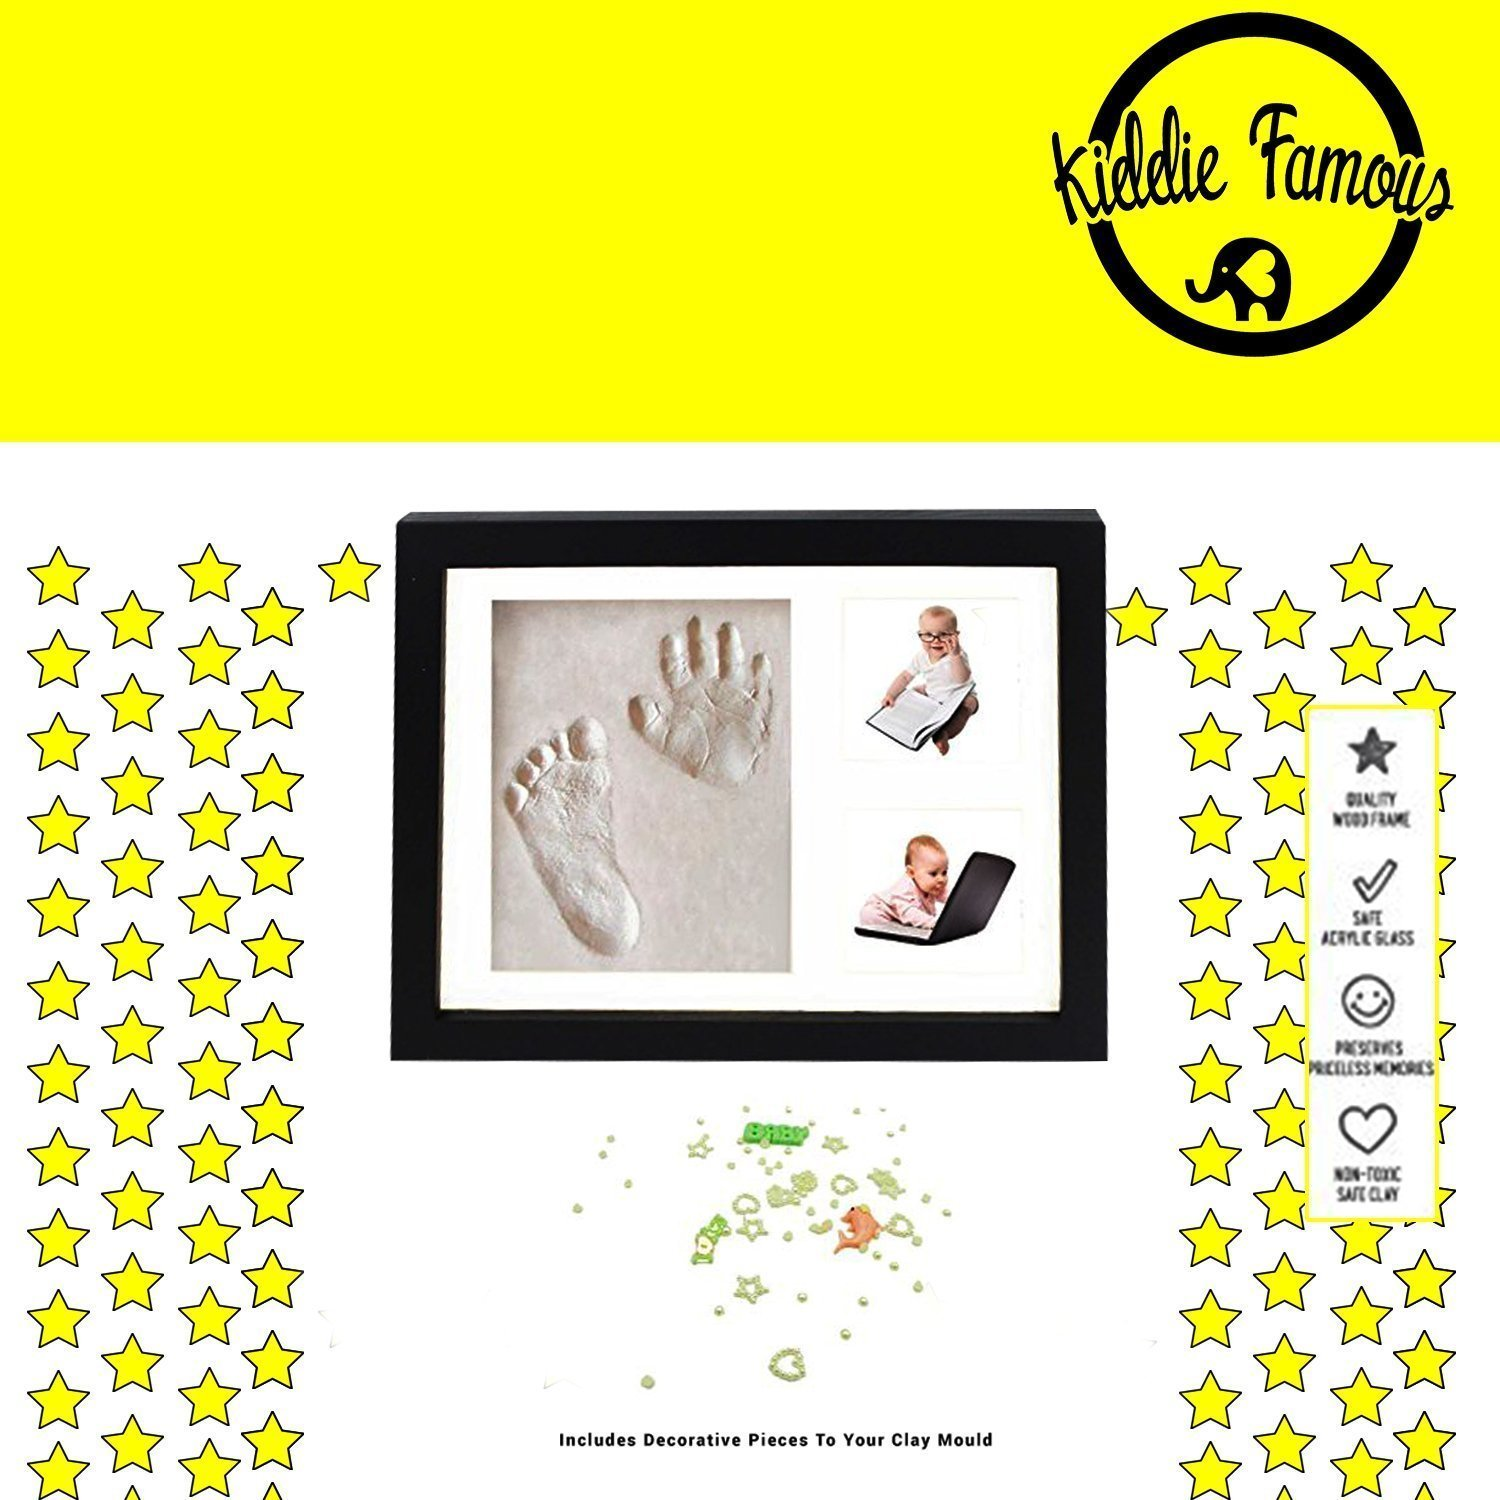 100% ORGANIC Baby Handprint Kit (BLACK) | SAFE, NO MOLD| Baby Picture Frame, Baby Footprint kit, Perfect for Baby Boy gifts,Top Baby Girl Gifts, Baby Shower Gifts, Newborn Baby Keepsake Frames